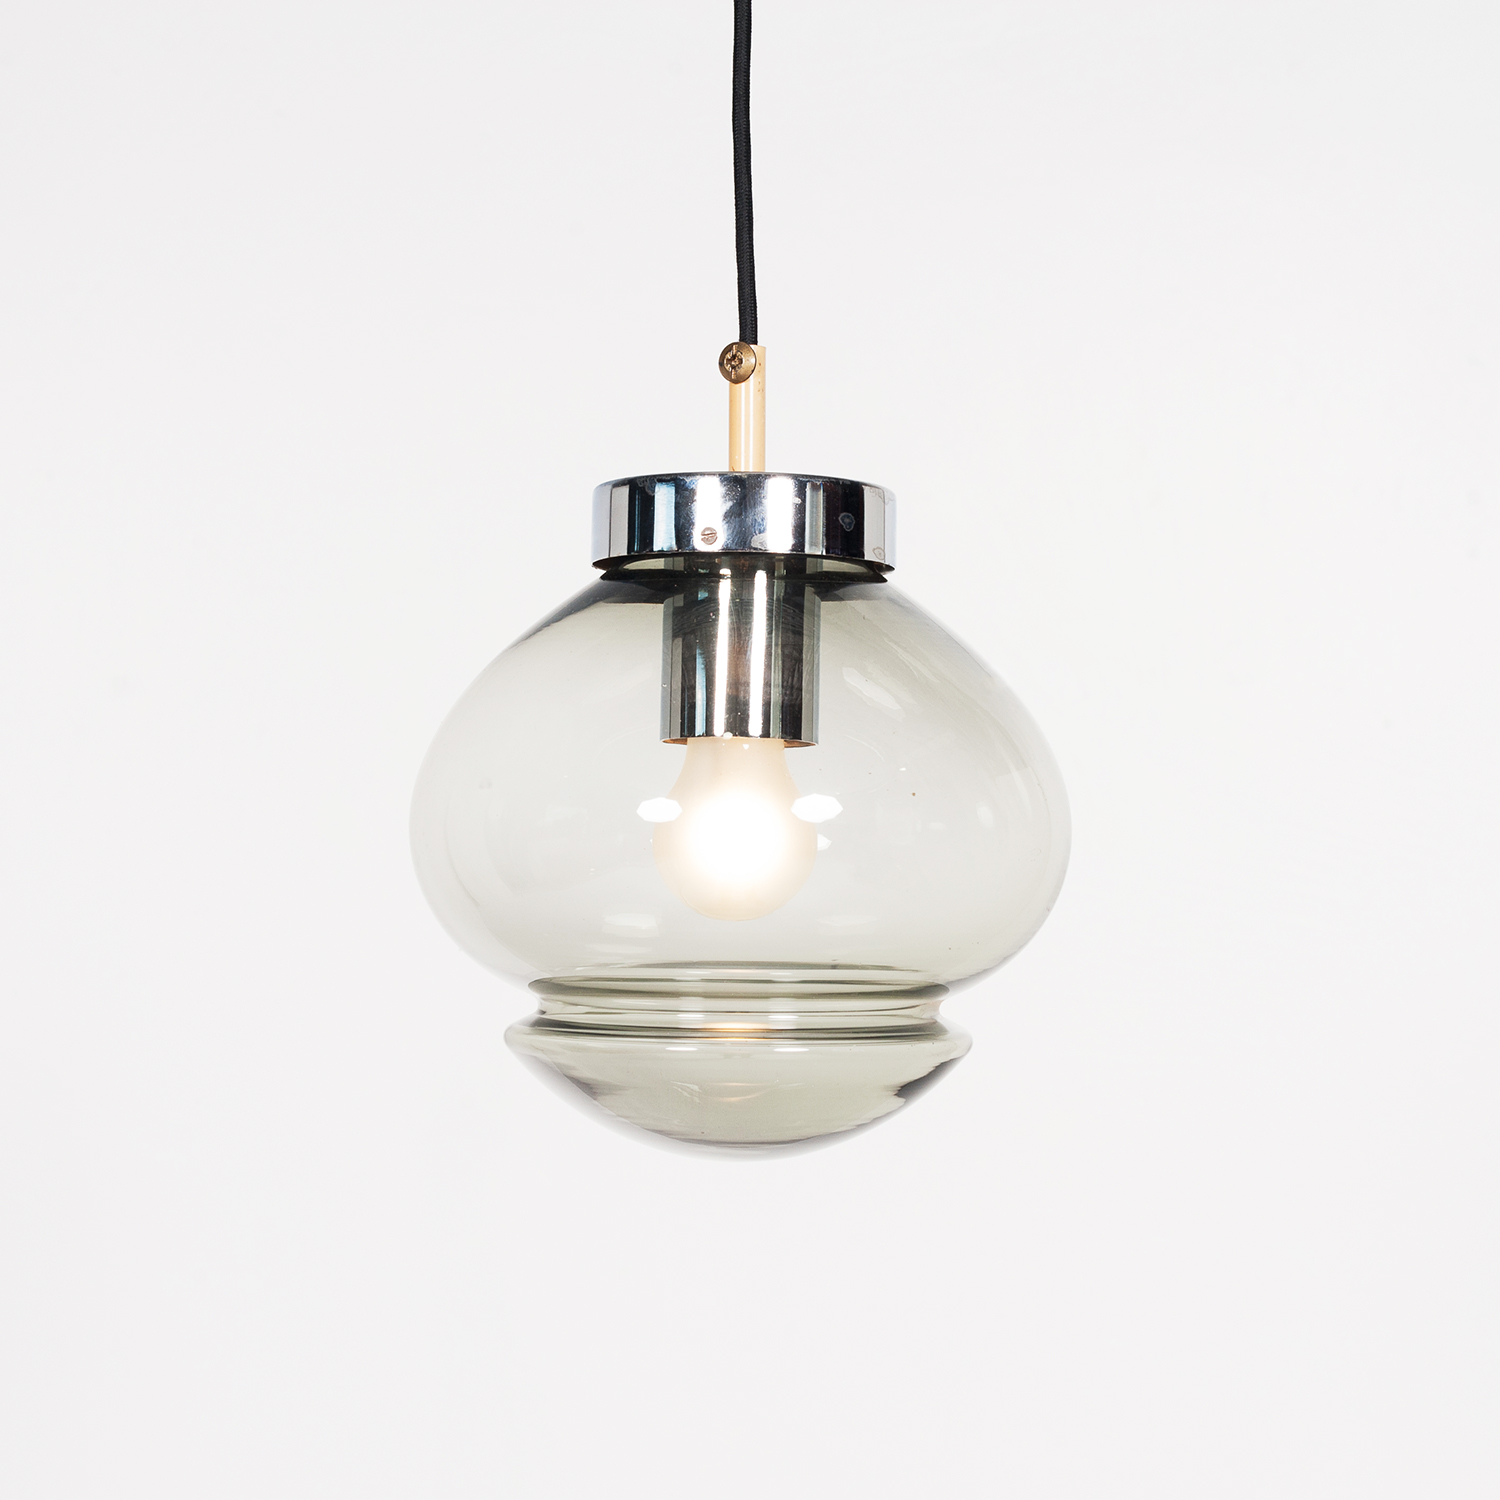 Pendant By Raak In Smoked Glass, 1970s, The Netherlands 1